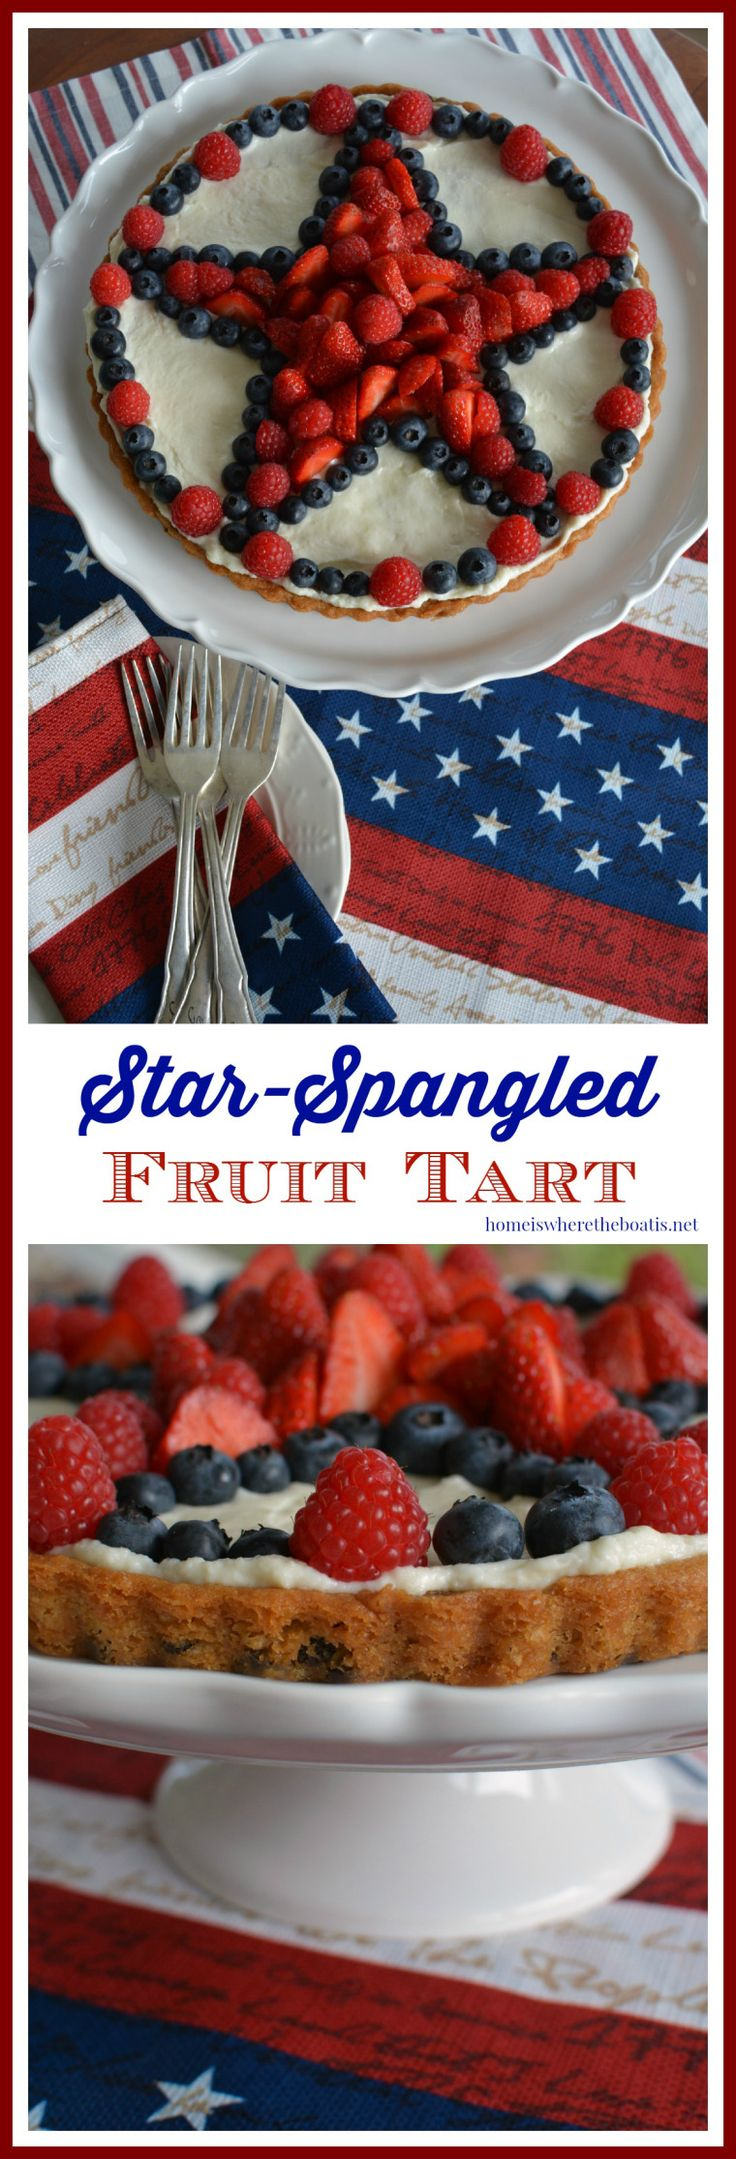 Star-Spangled Fruit Tart with a chocolate chip cookie dough crust! | homeiswheretheboatis.net #patriotic #dessert